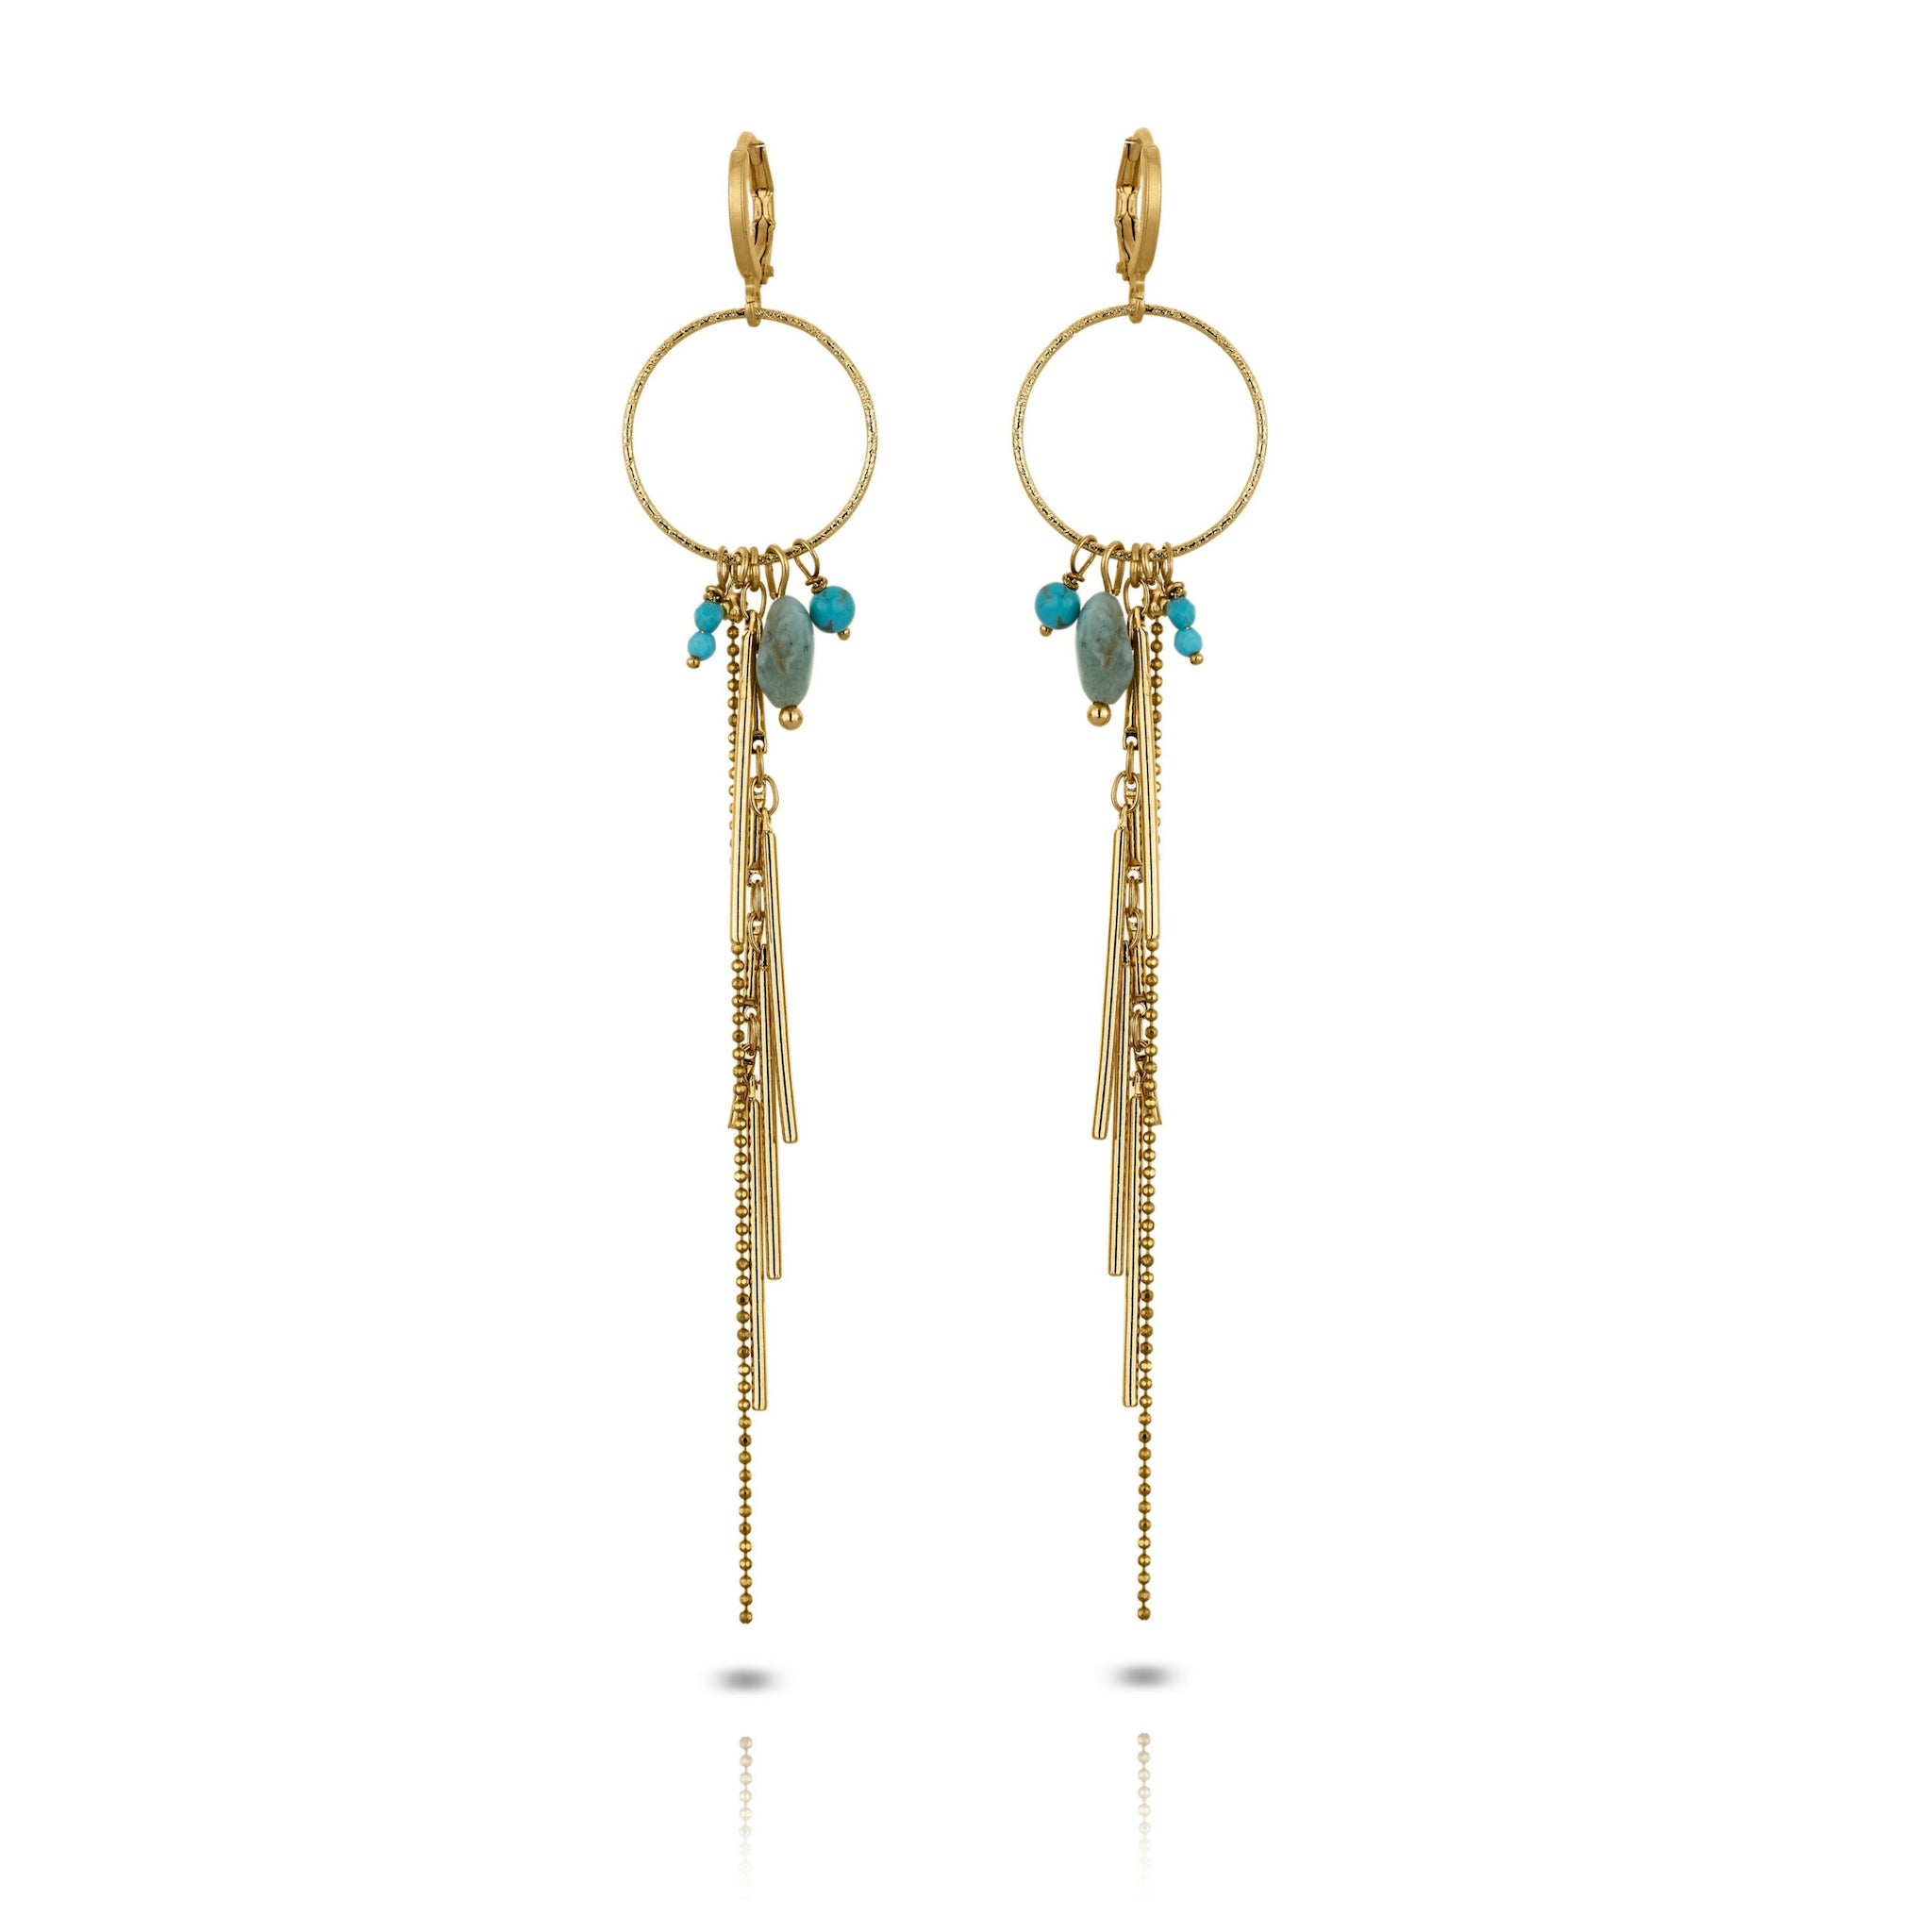 Mme bovary bovary studio party collection turquoise model